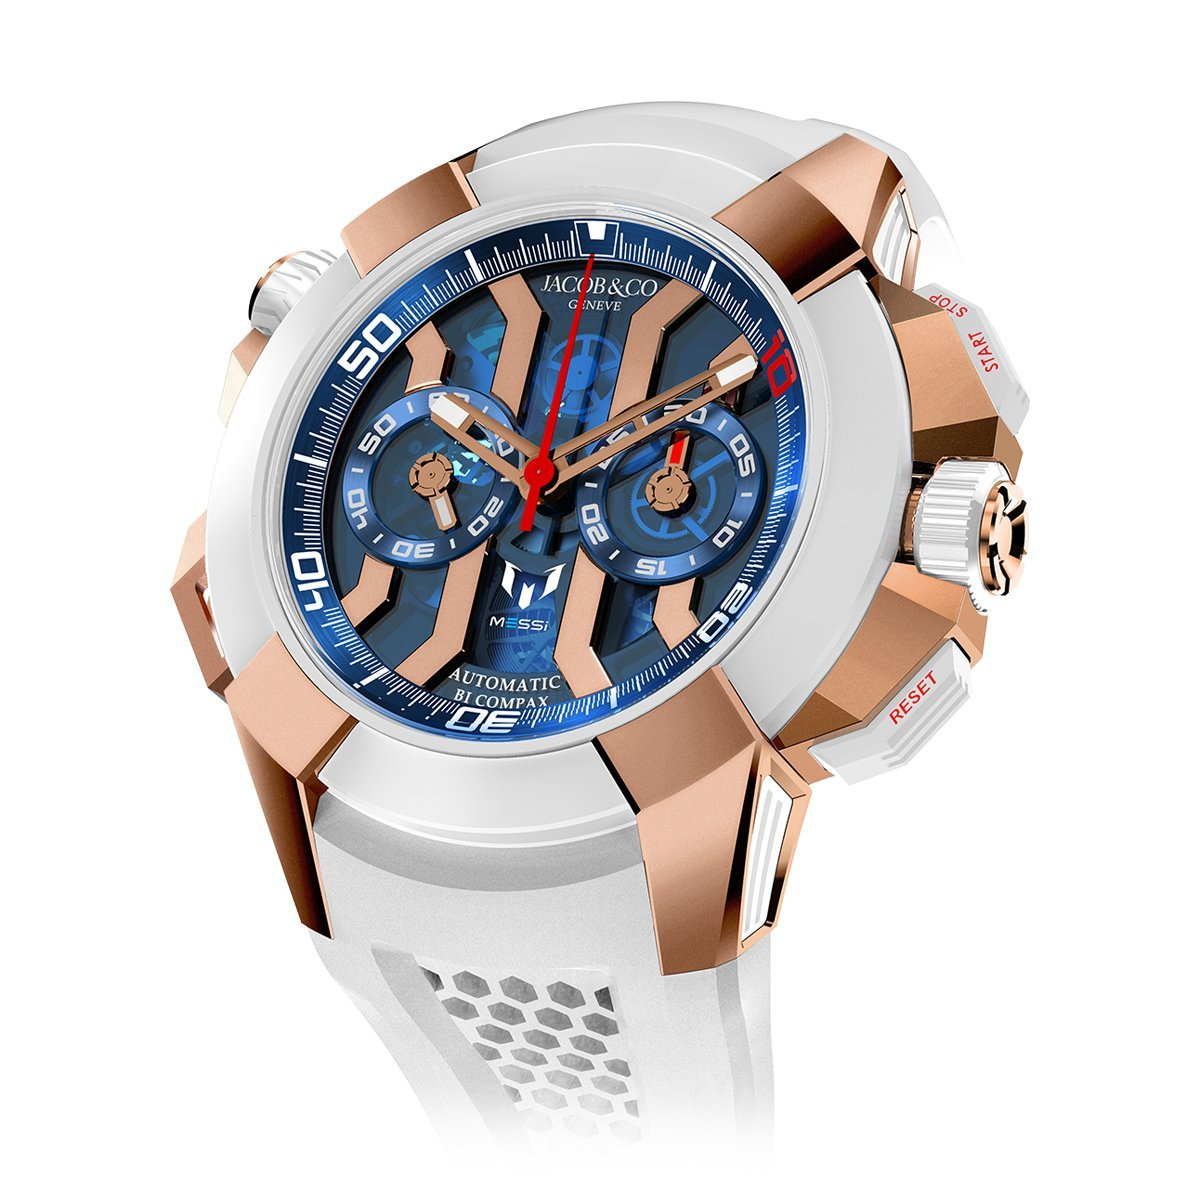 Jacob & Co. Epic X Chronograph Messi Rose Gold - Watches & Crystals